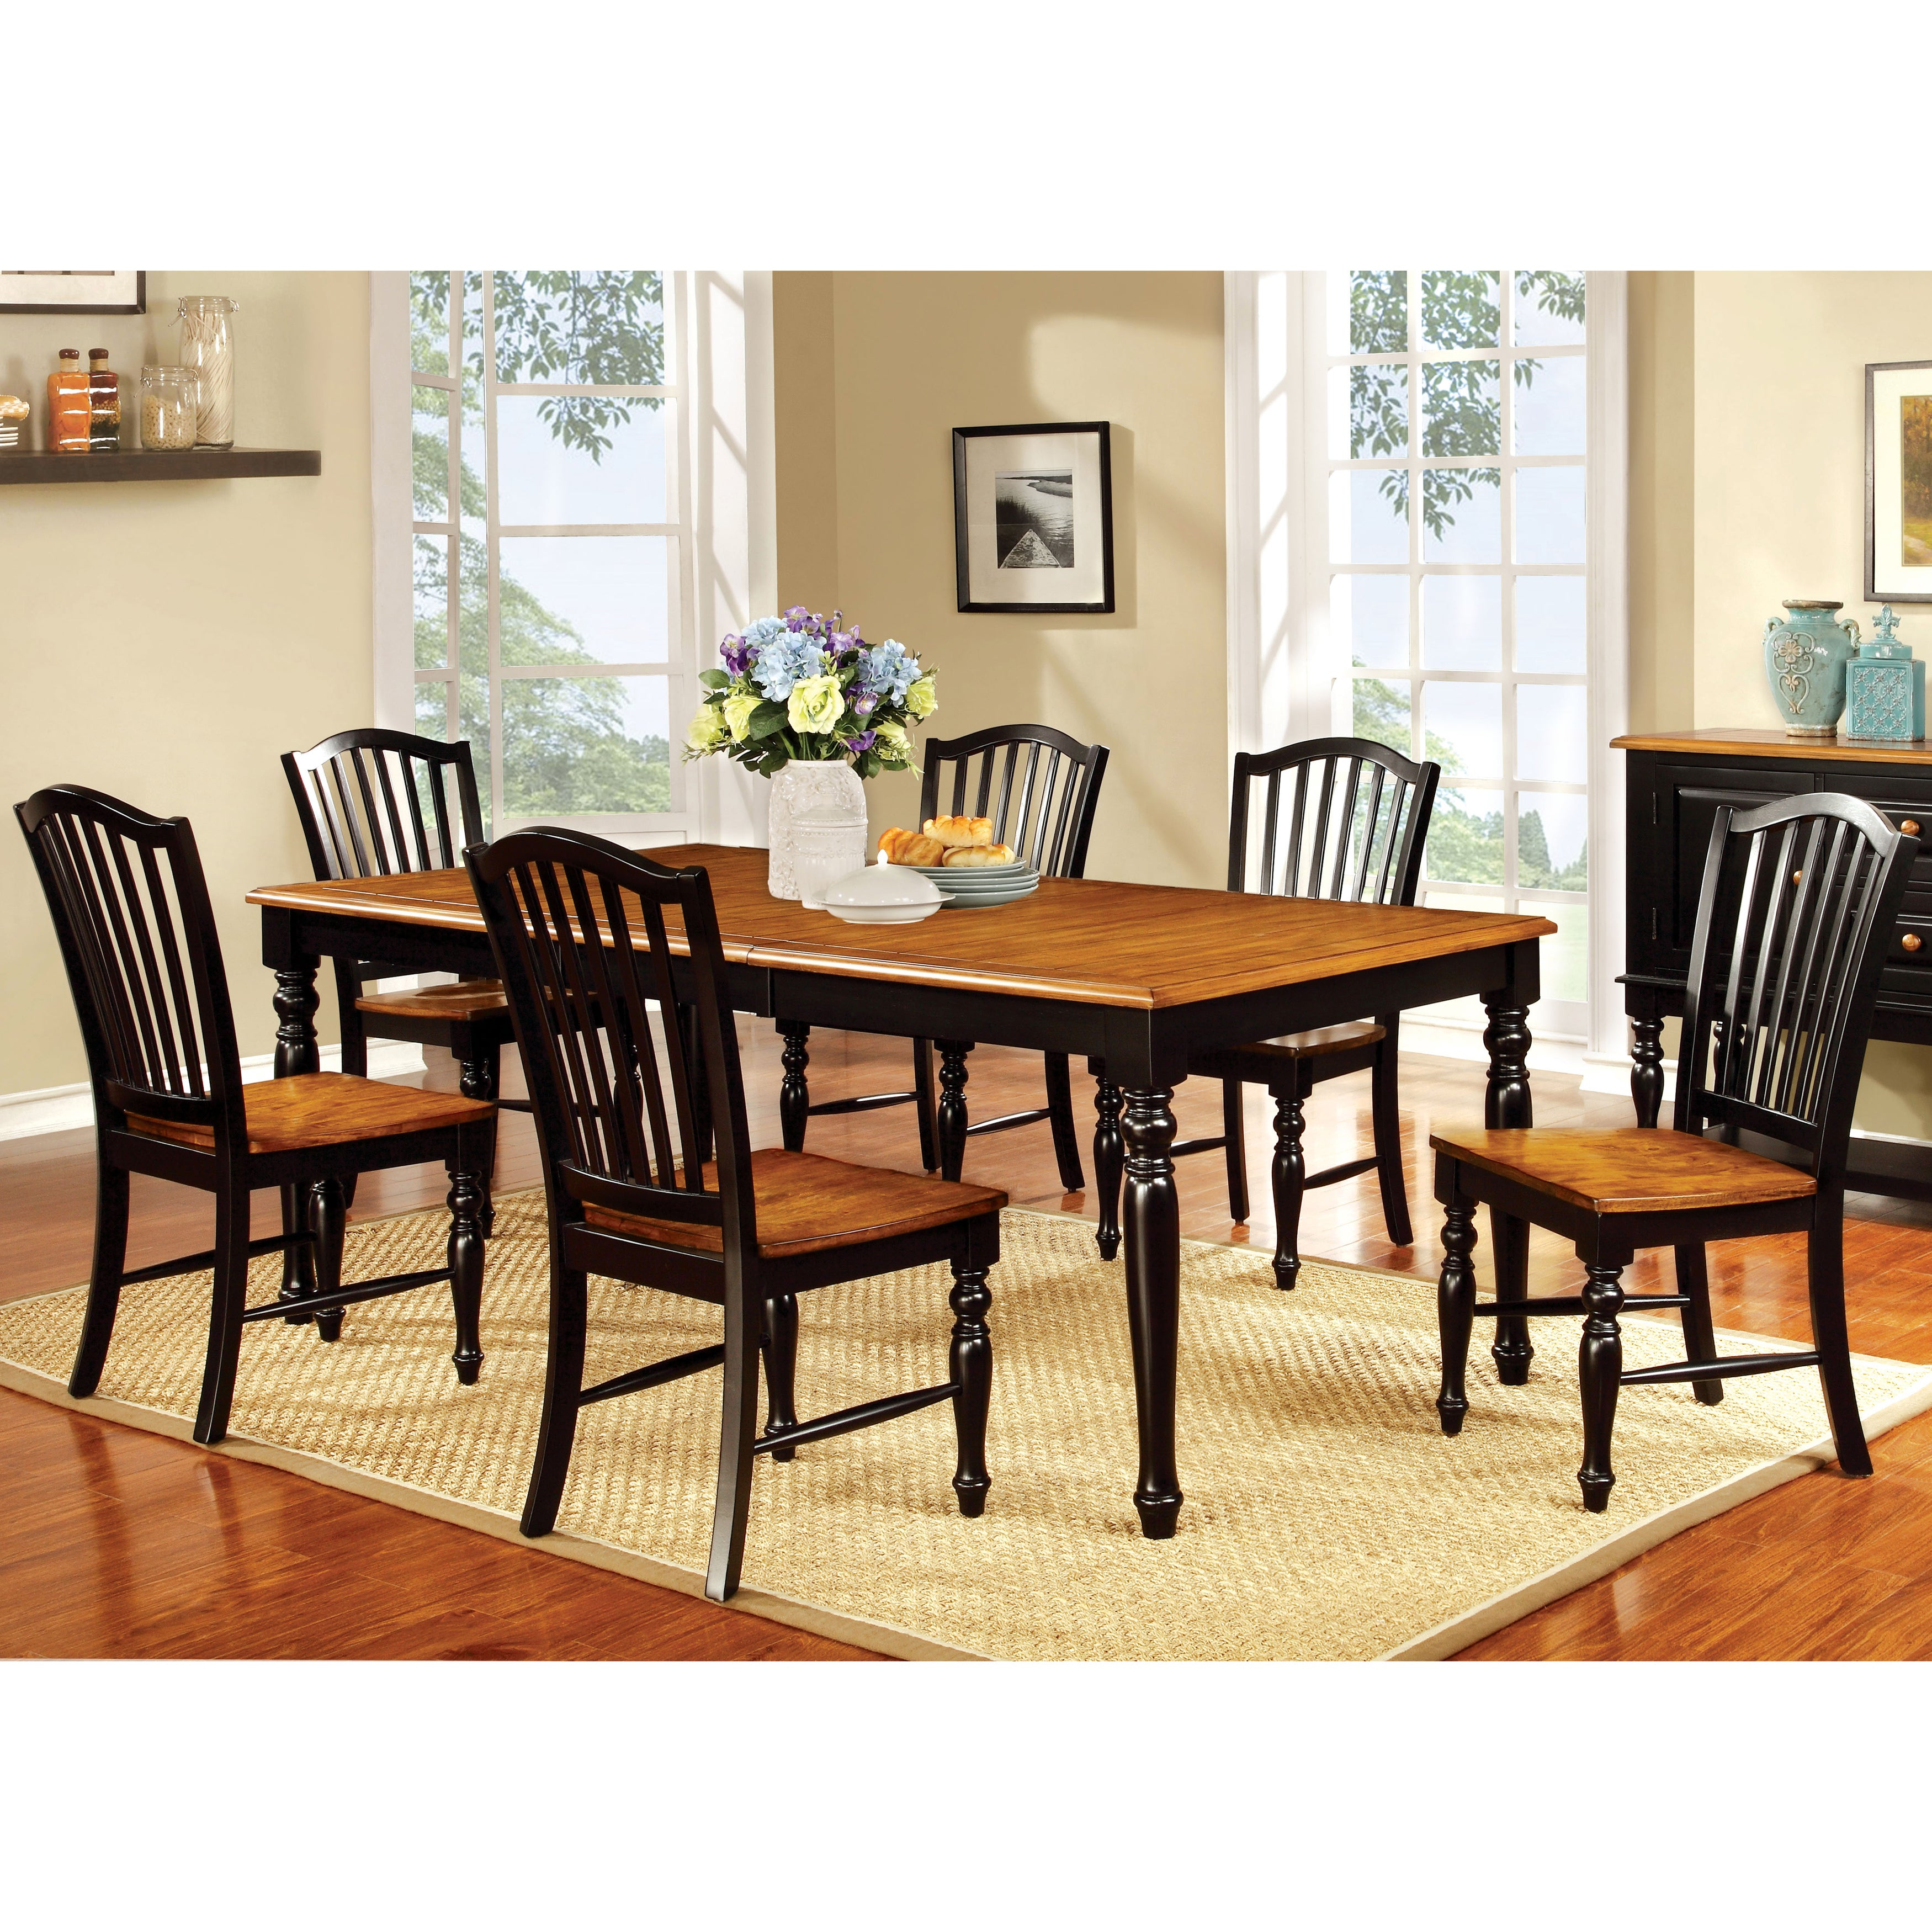 The Gray Barn Oak Glen Two Tone Country Style 18 In Leaf Dining Table